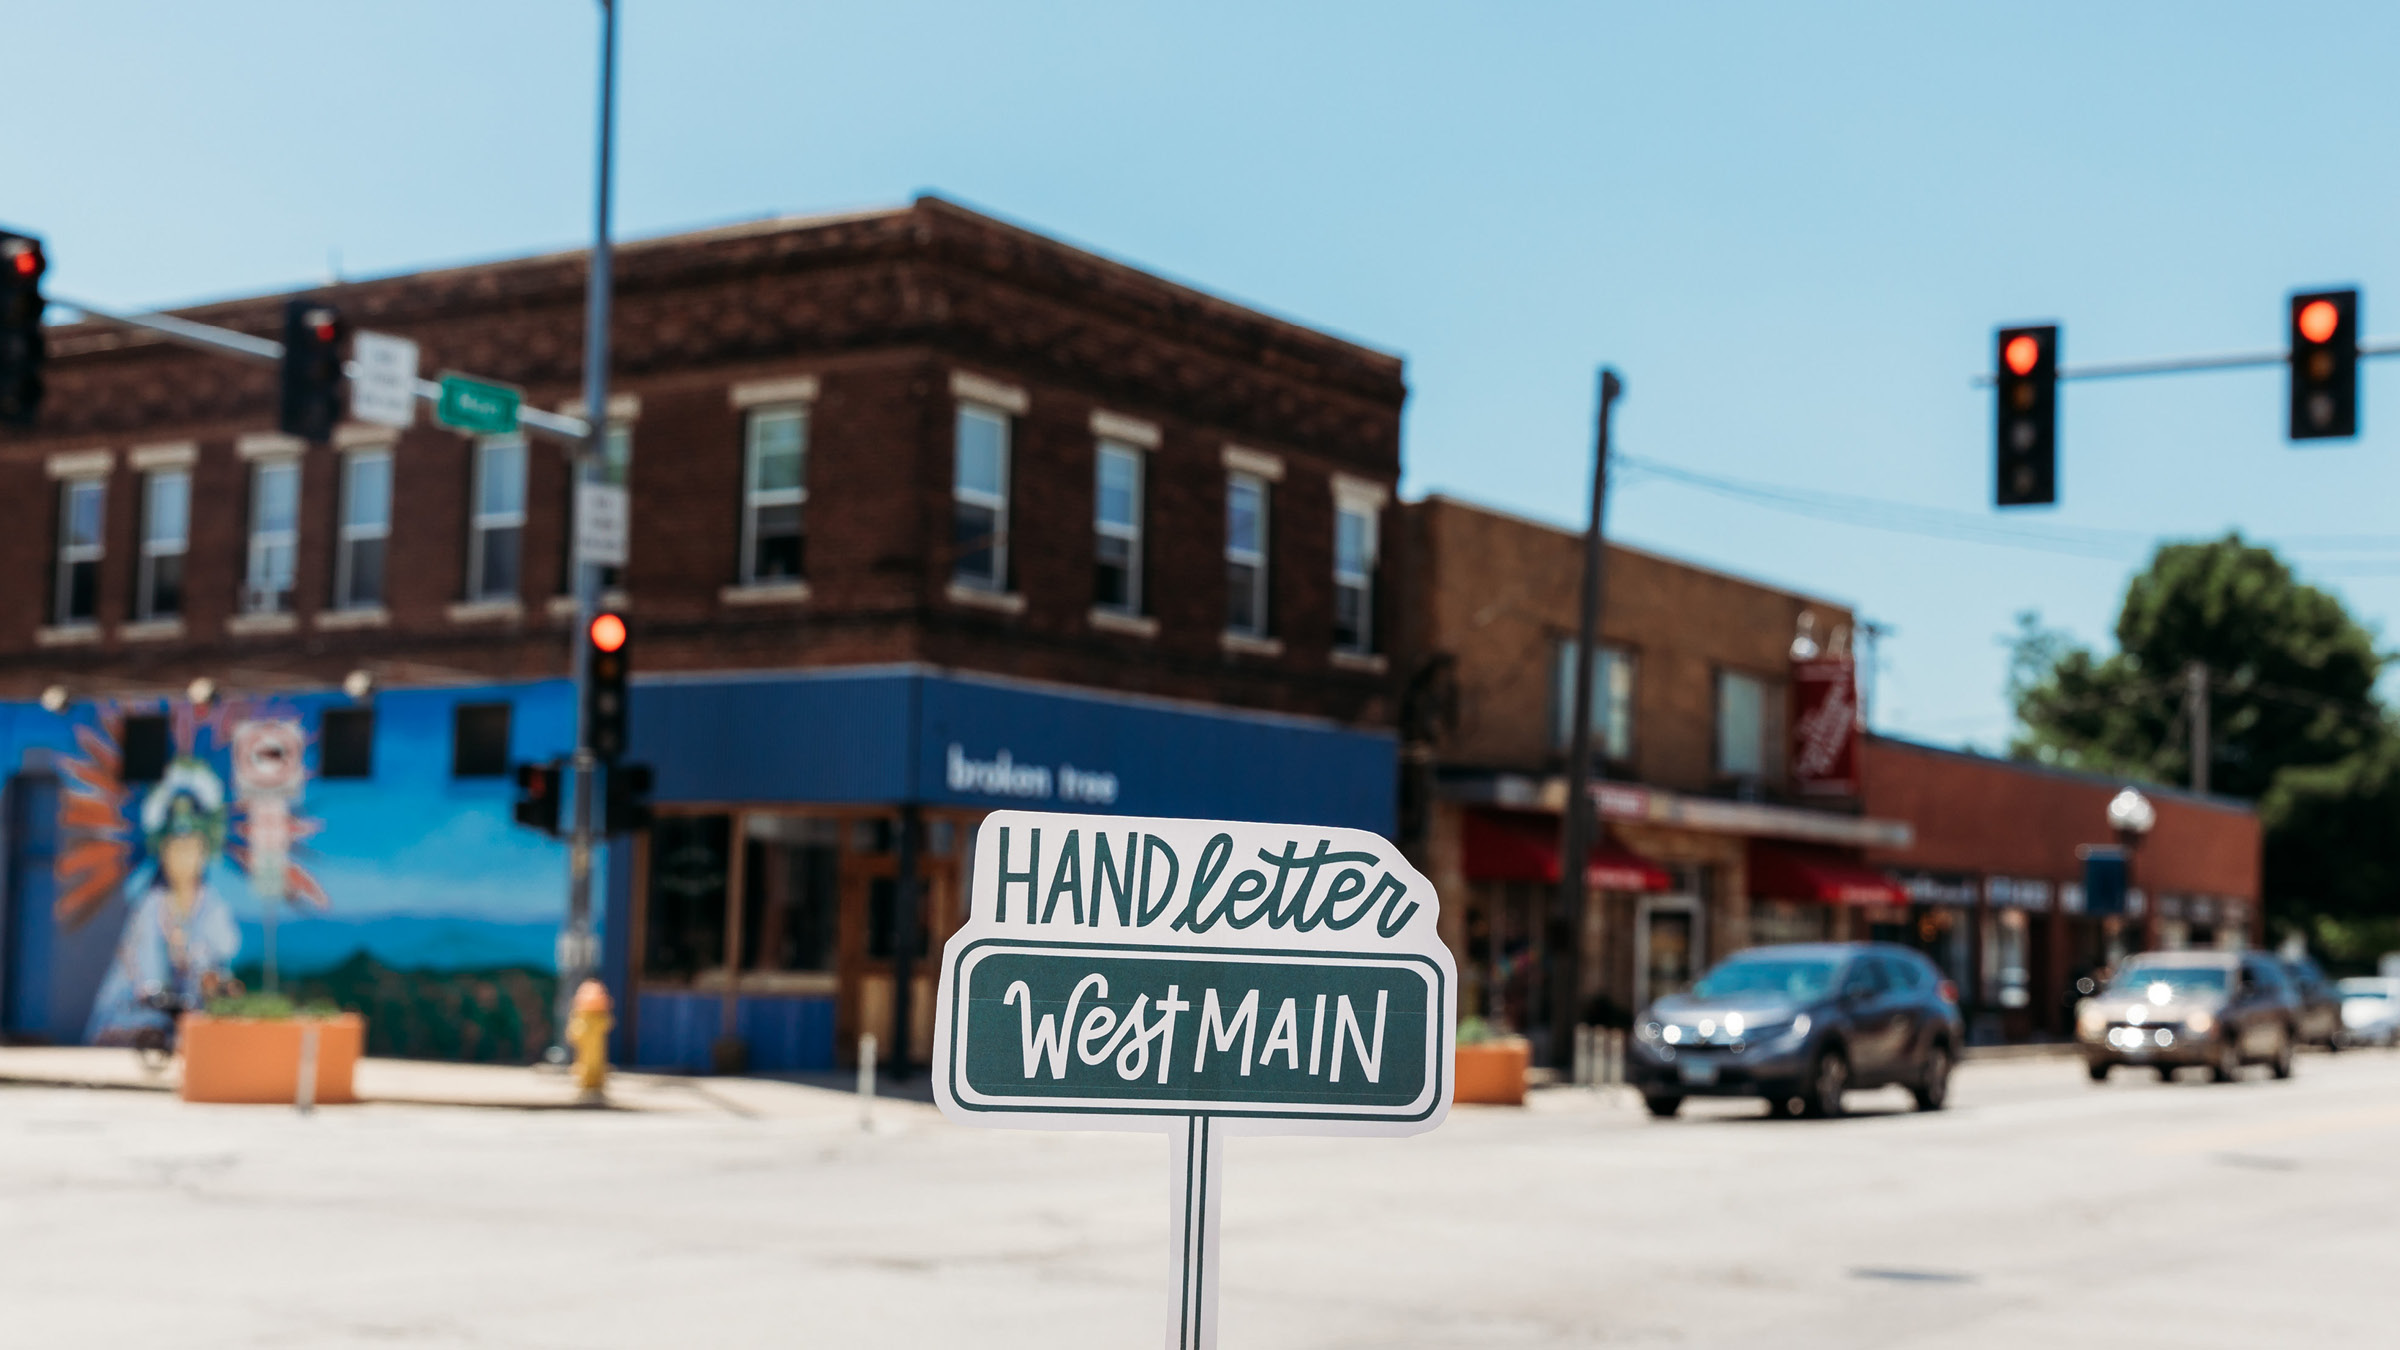 Hand Letter West Main  was a passion project born out of a desire to take action in the community, showcase my skills, and start a conversation. And it did just that.